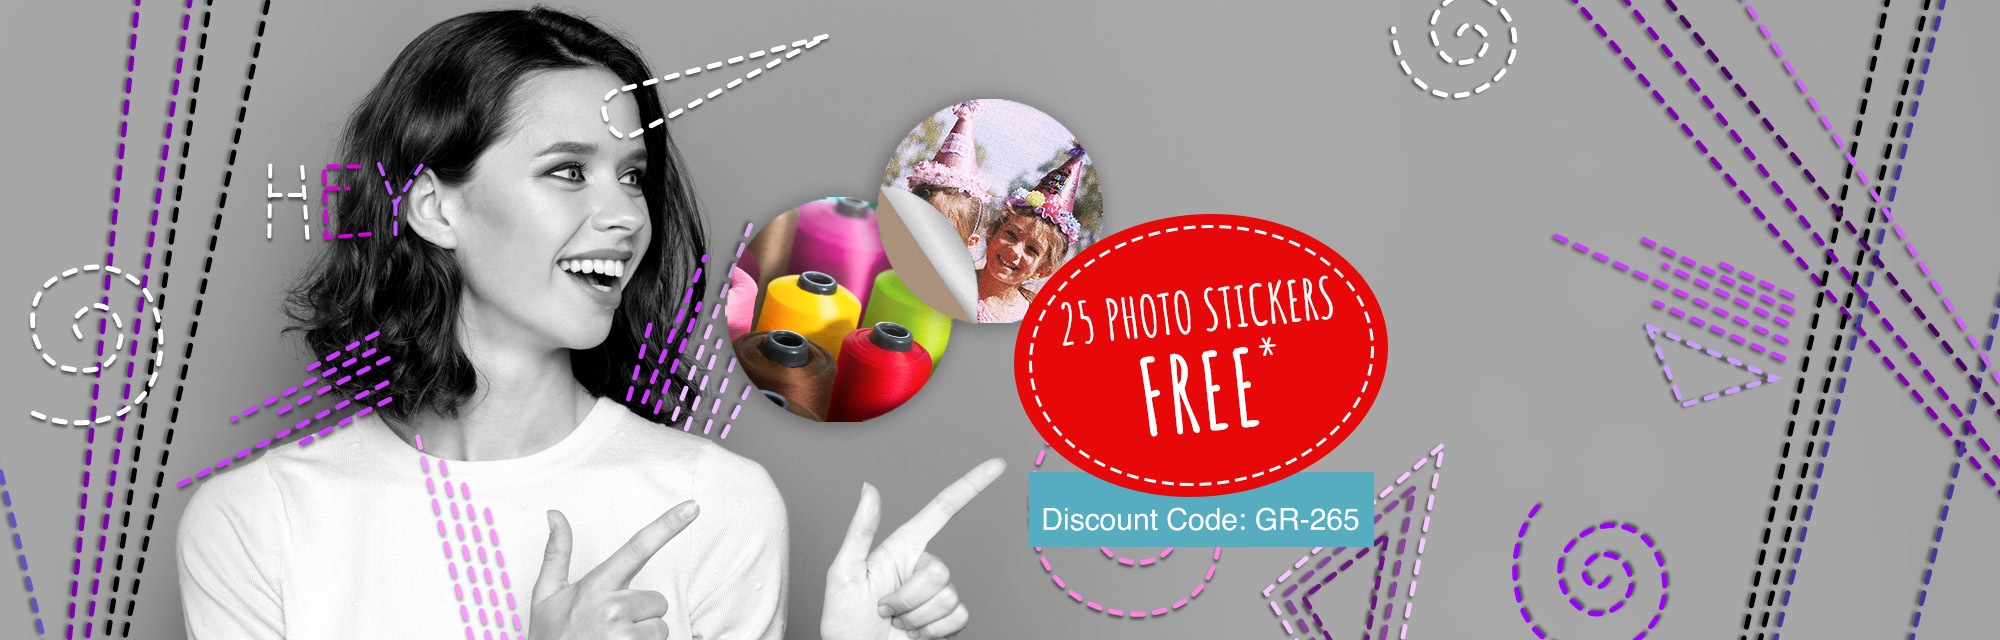 We are giving you 25 stickers with your photo*!